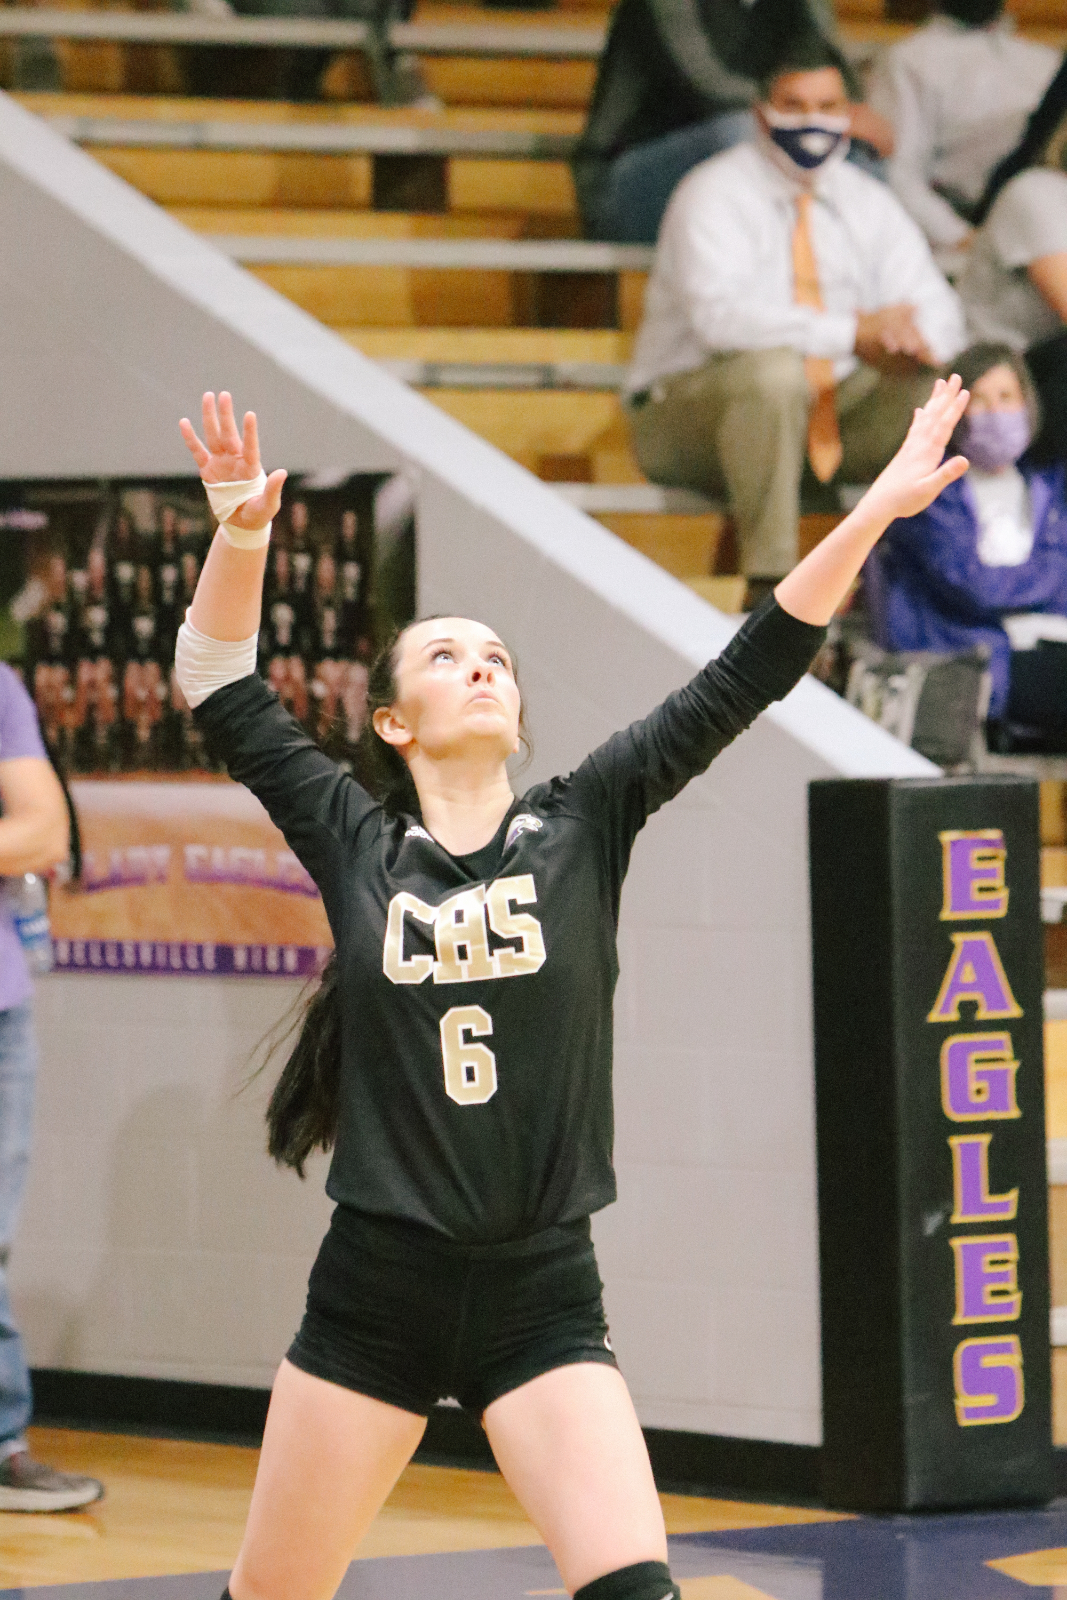 CHS Volleyball vs Taylor County – District Tournament – Oct. 20, 2020